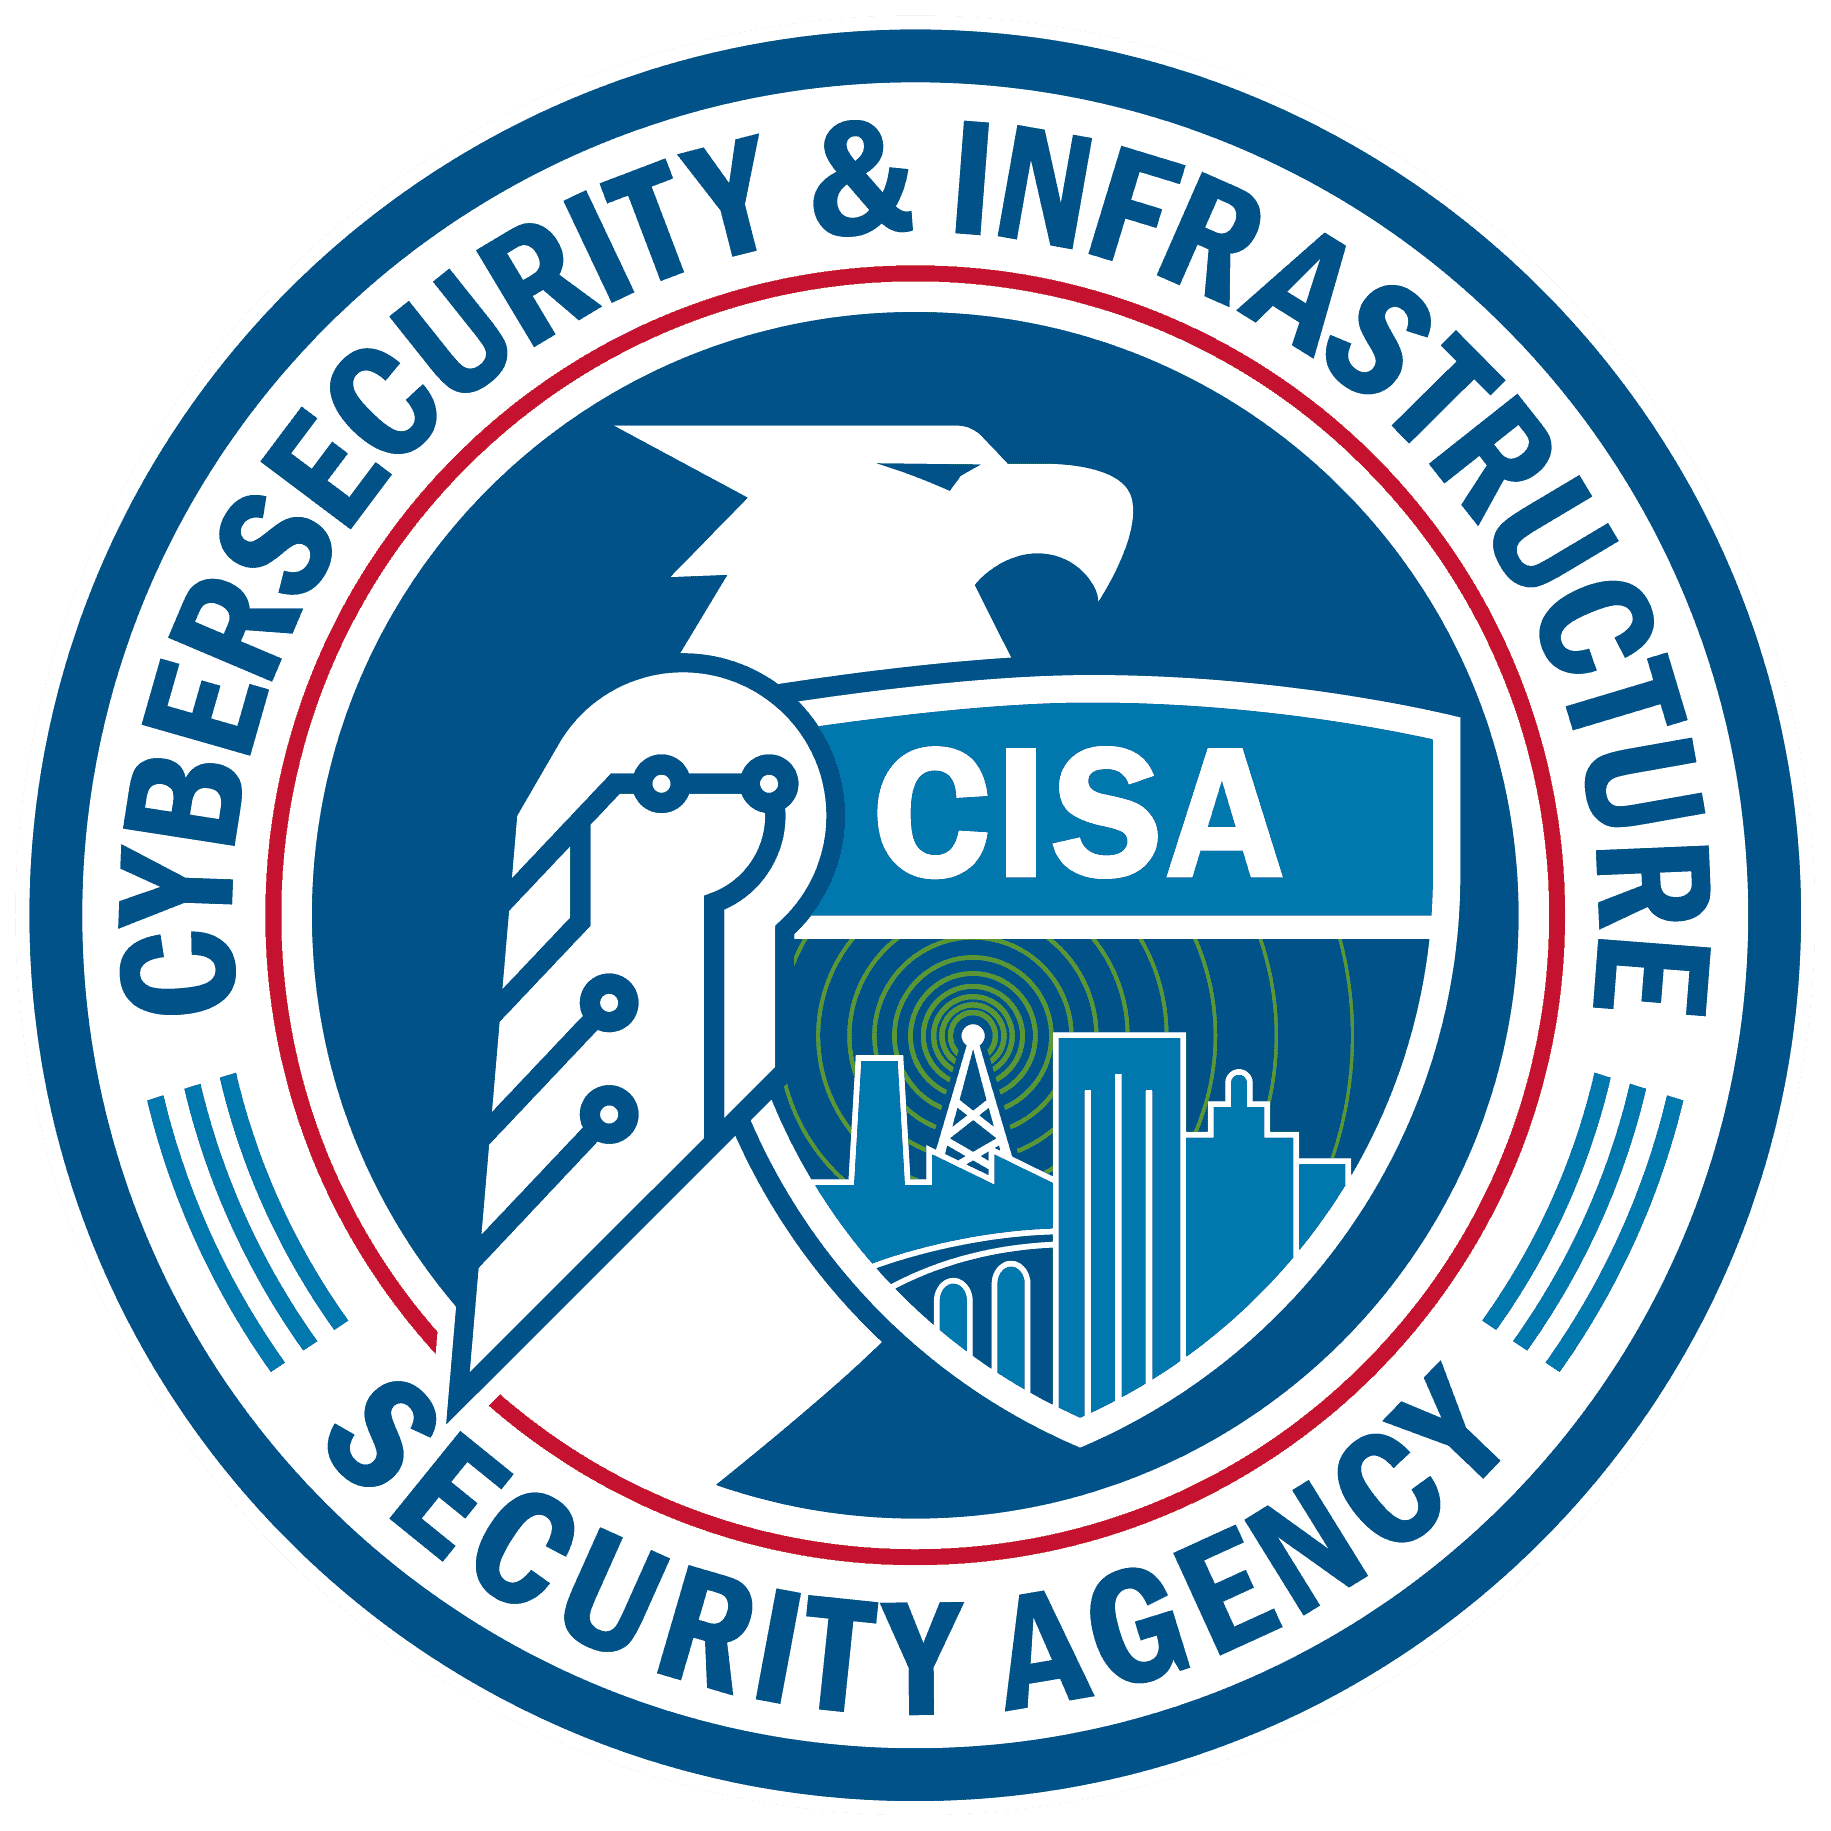 https://www.dominionvoting.com/wp-content/uploads/2020/06/us-cisa-1.png